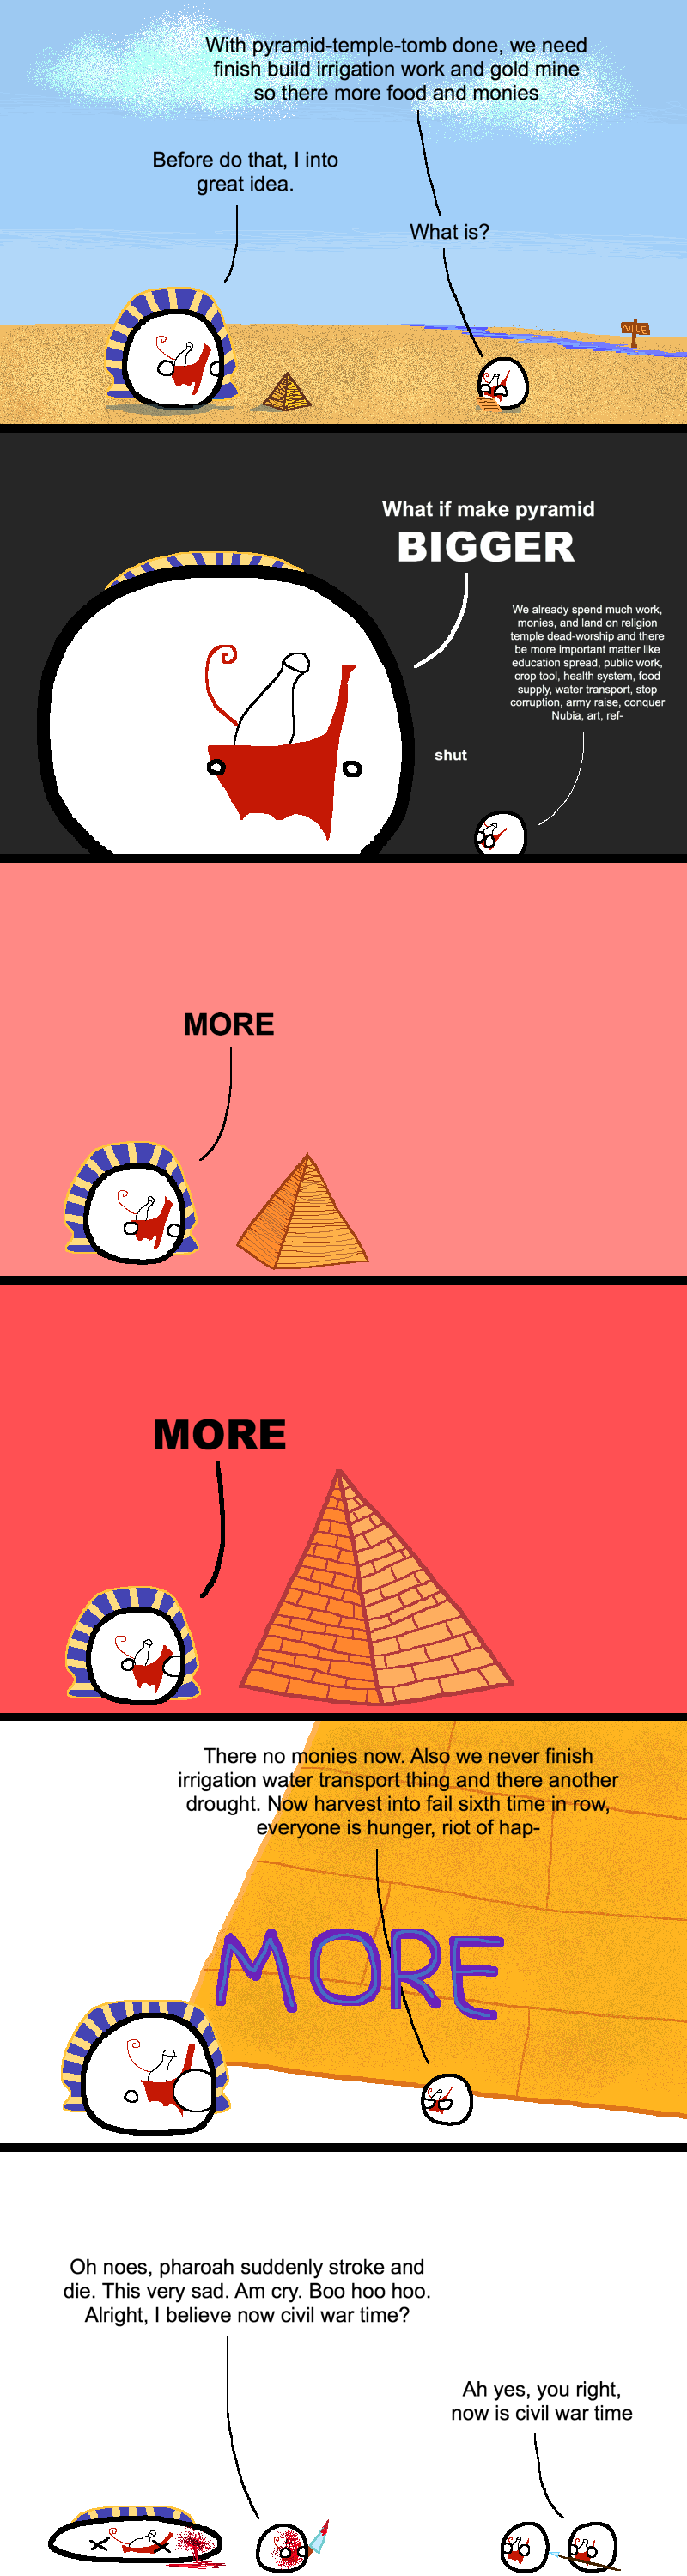 Countryball Ancient Egypt The Old Kingdom Some Jokes Ancient Egypt Country Humor